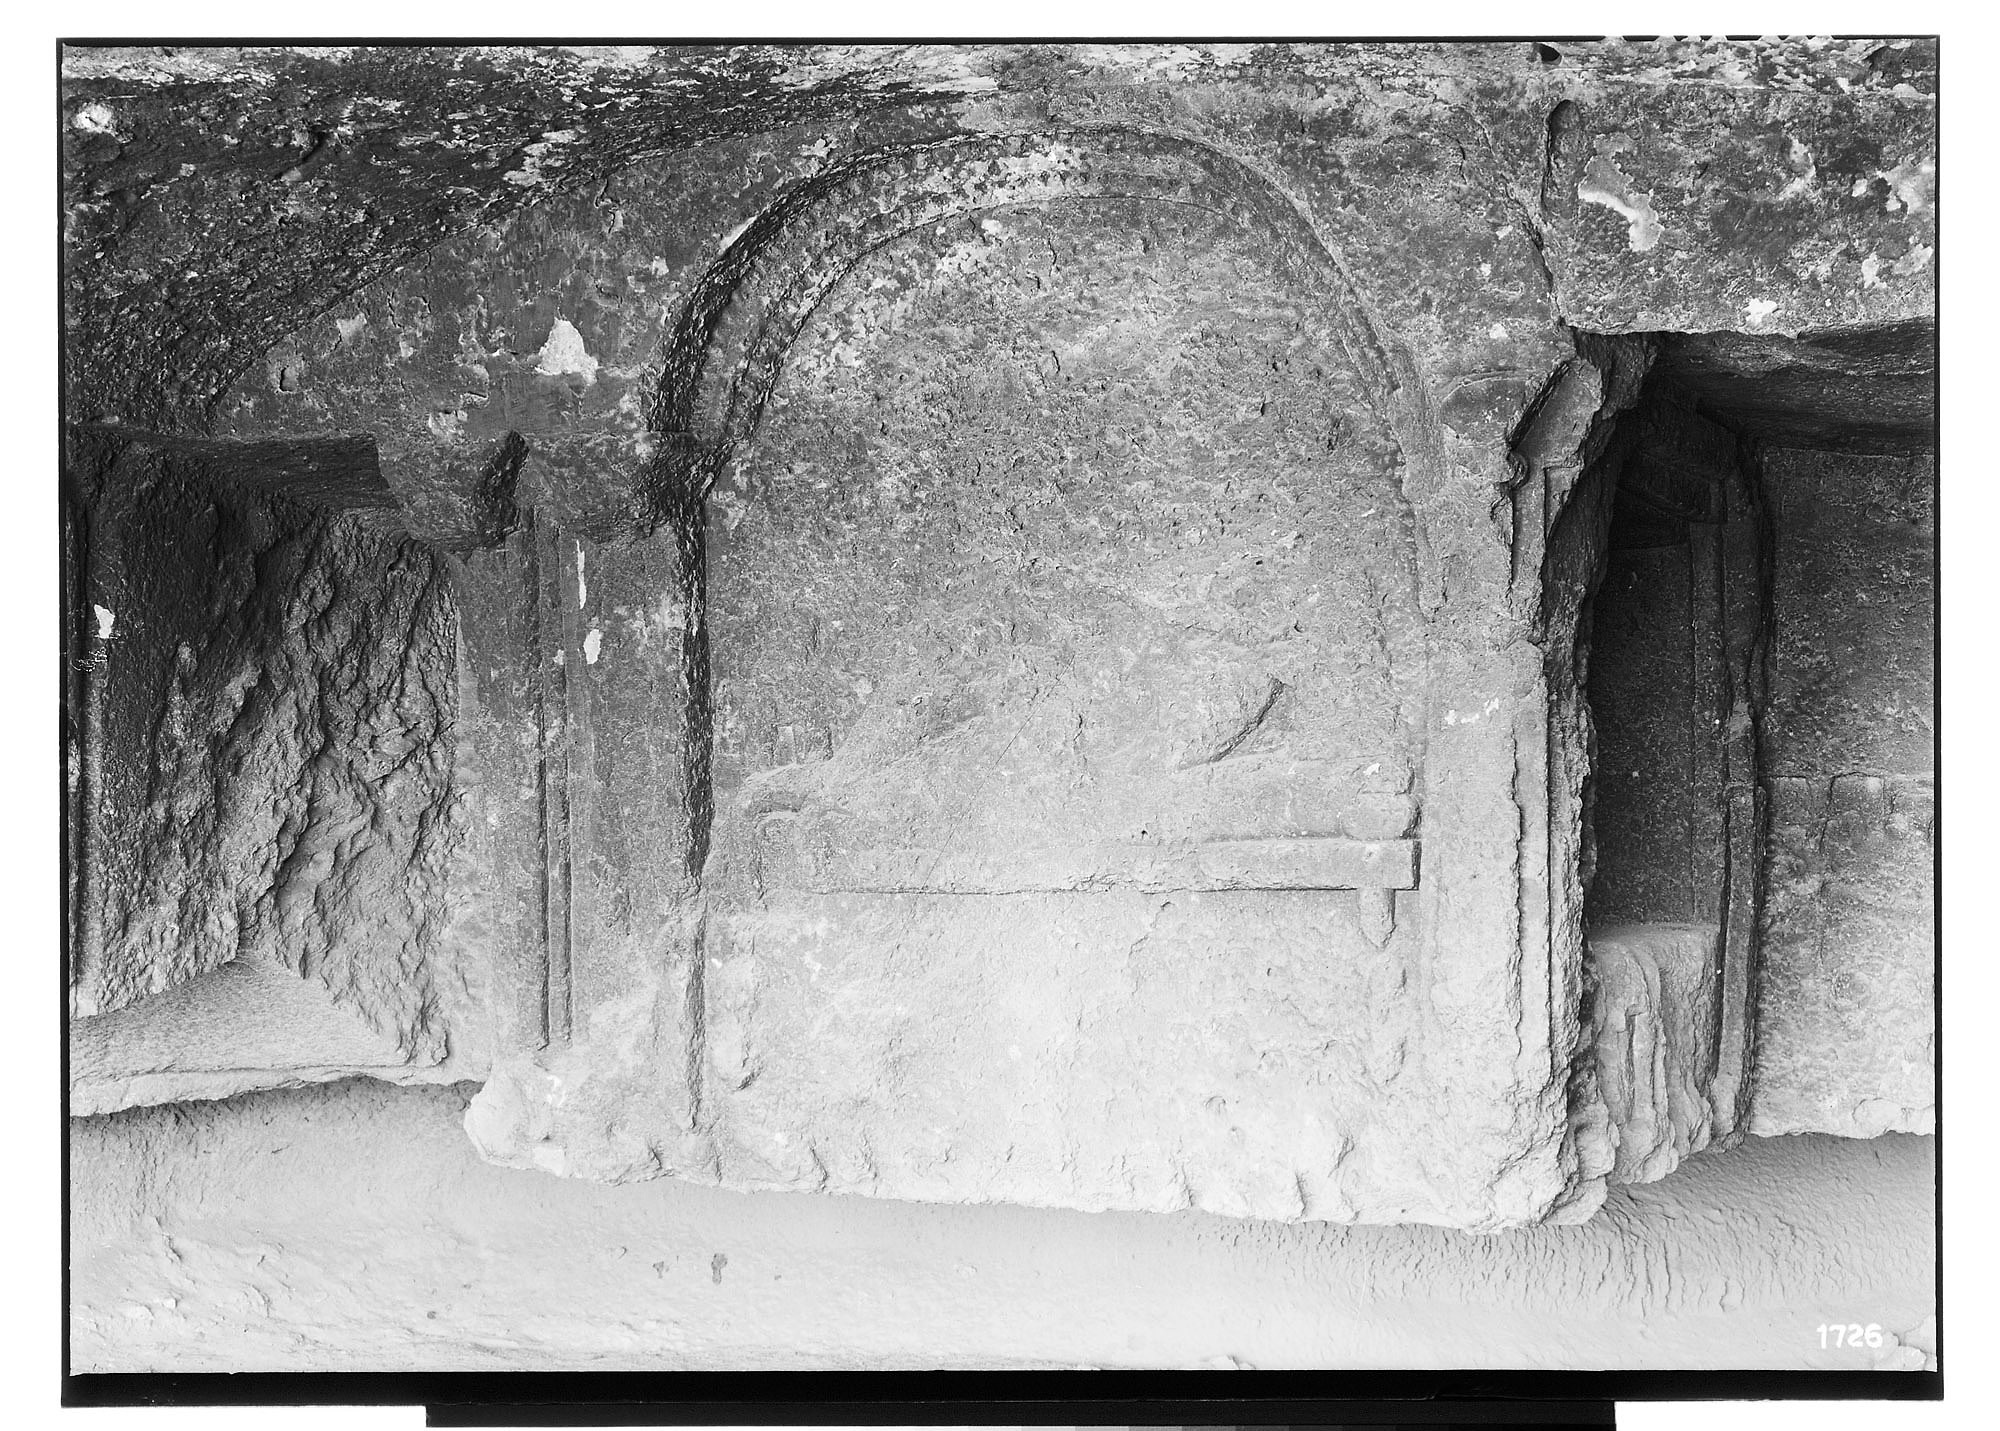 Island of Kharg (Iran): Southern Tomb with Relief Depicting a Single Reclining Male on a Couch, Excavated out of the Surface Rock of the Plateau [graphic]